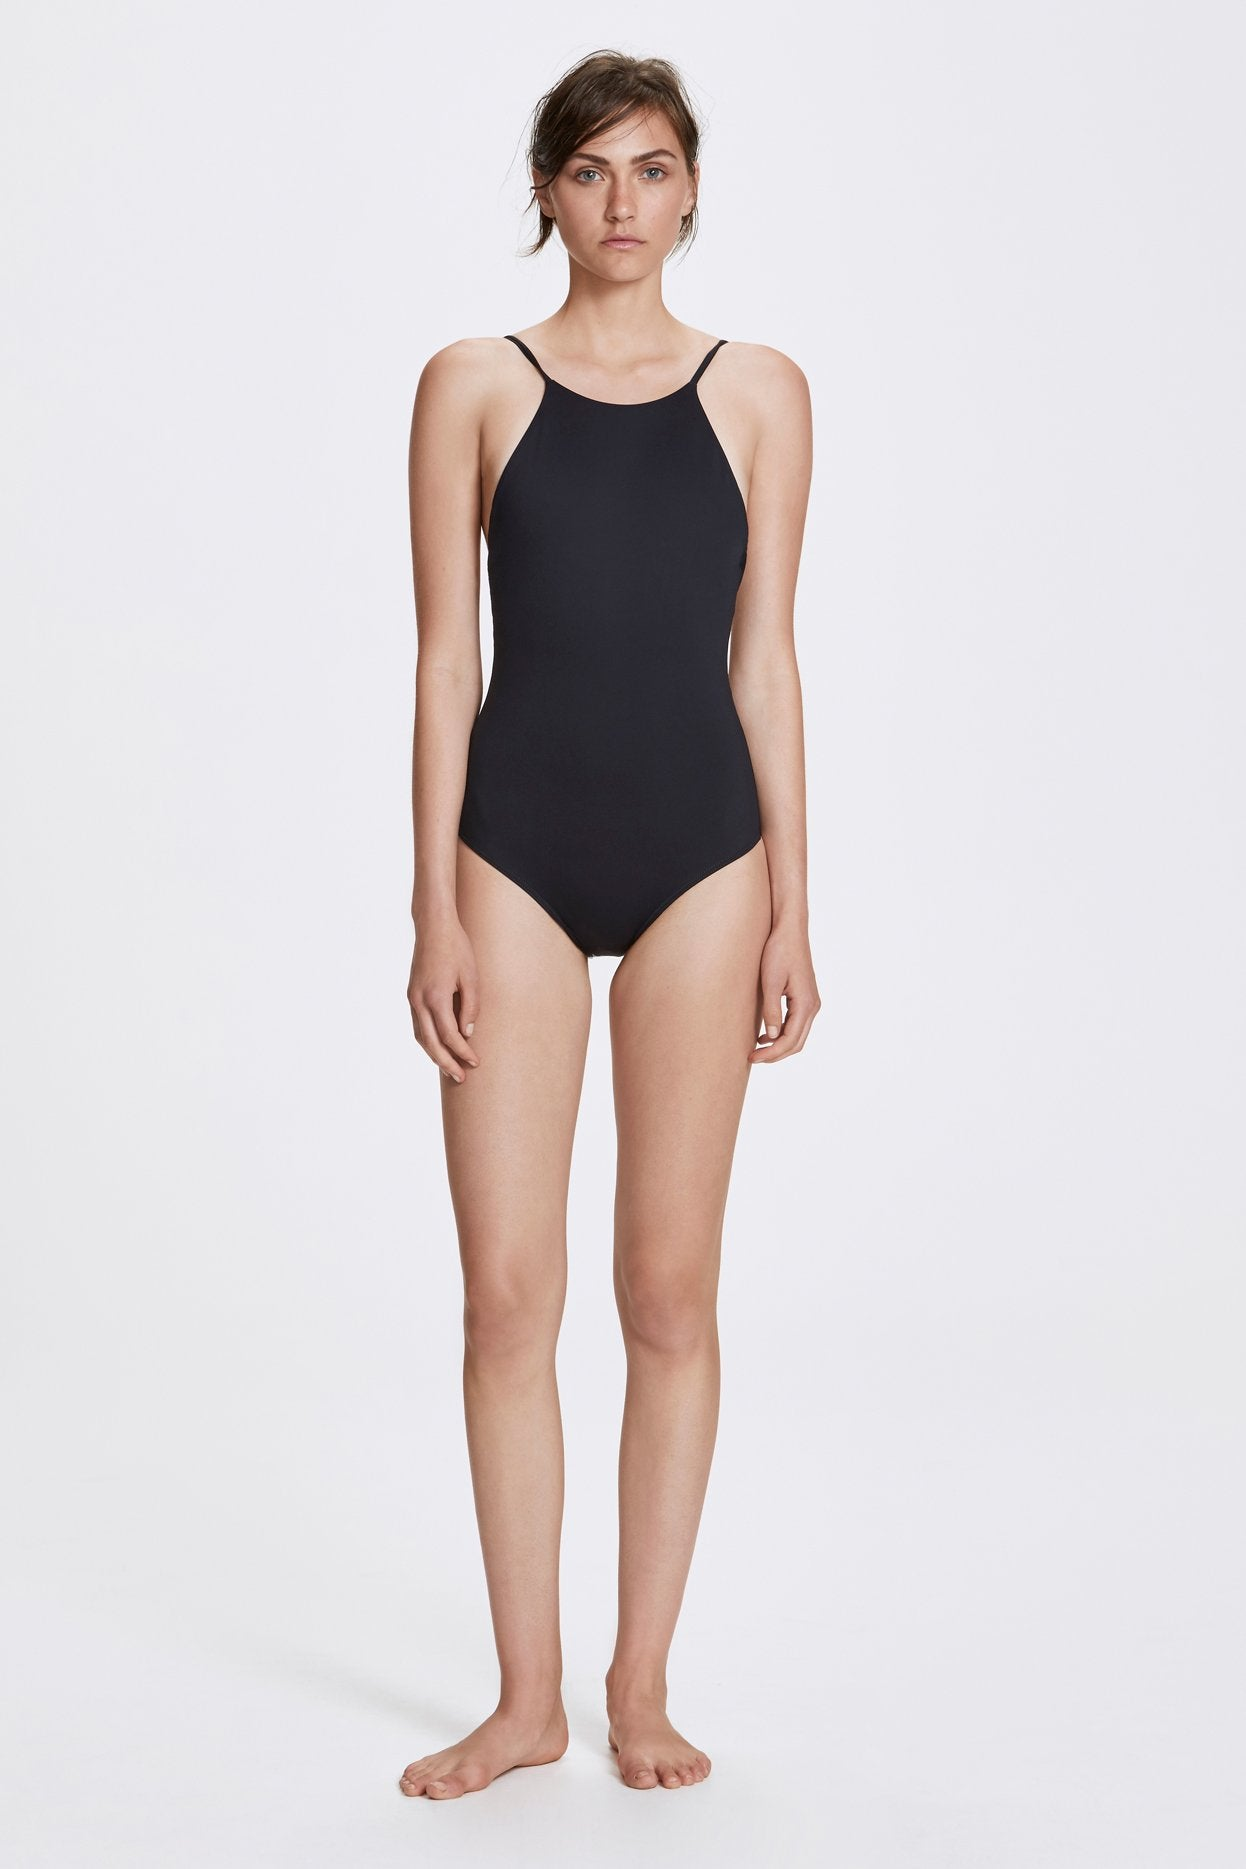 Her Line Jill Swimwear One Piece Coal Black Front